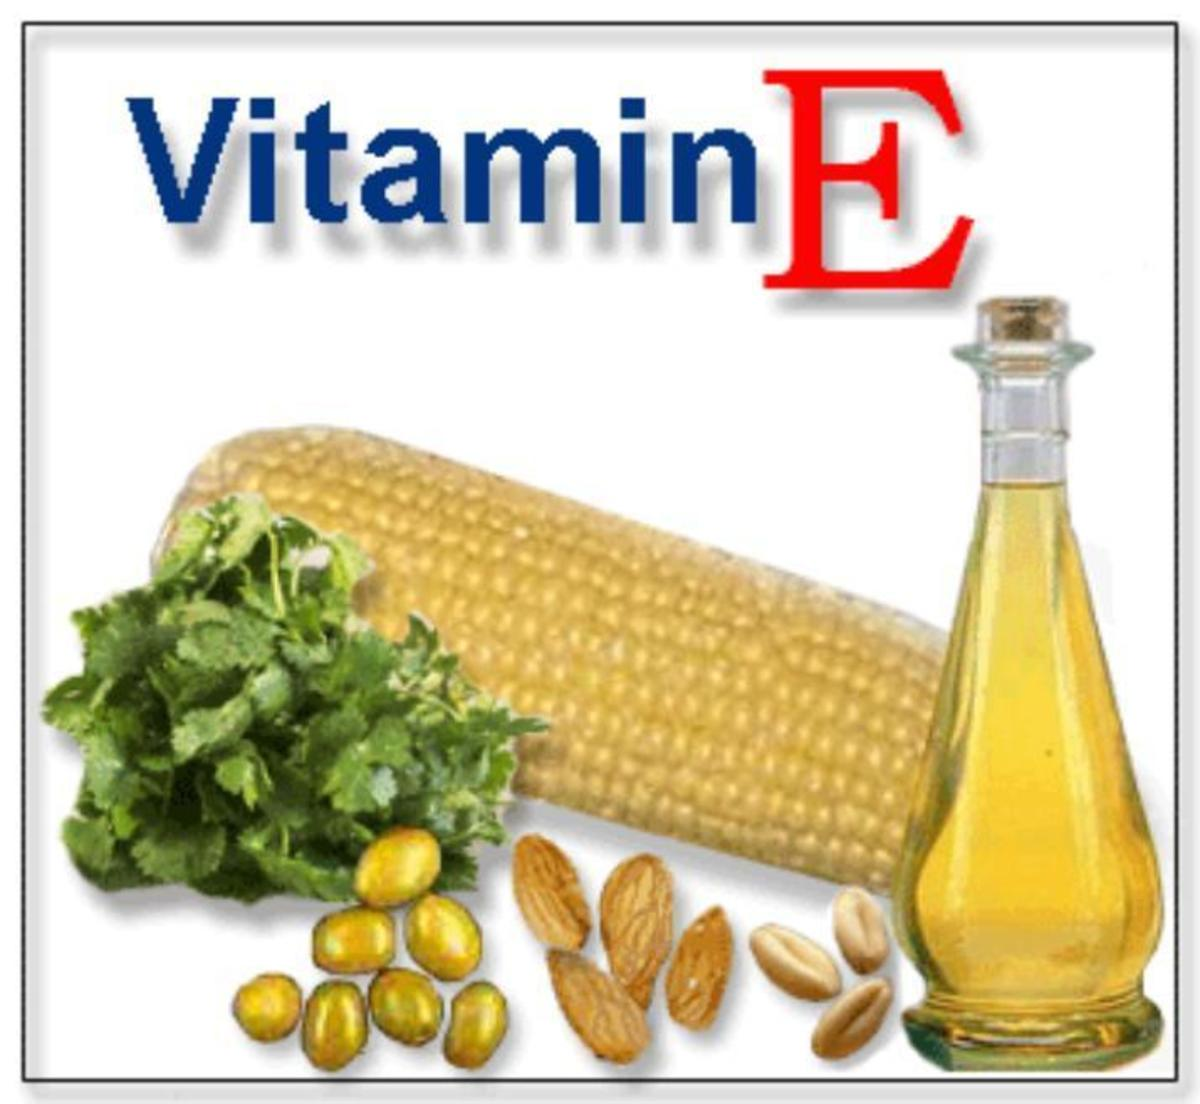 Vitamin E represents a family of eight fat-soluble anti-oxidant vitamins. Alpha-tocopherol is the most important vitamin E in humans. Alpha-tocopherol protects the LDL cholesterol in the blood and body cell membranes from oxidation by free radicals